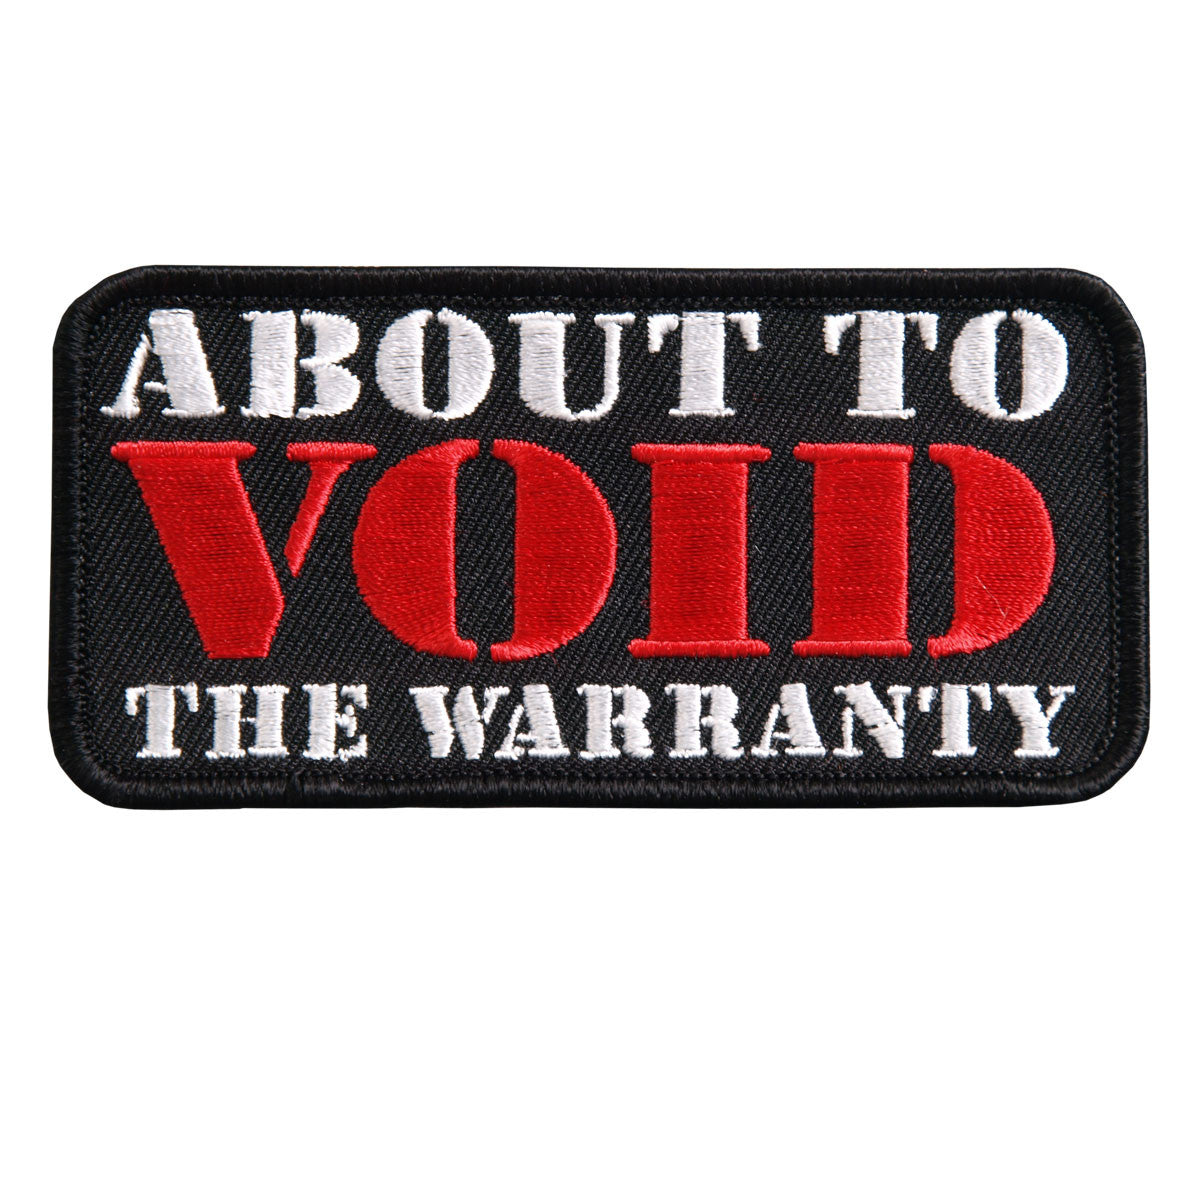 About to Void Warranty - Maine-Line Leather